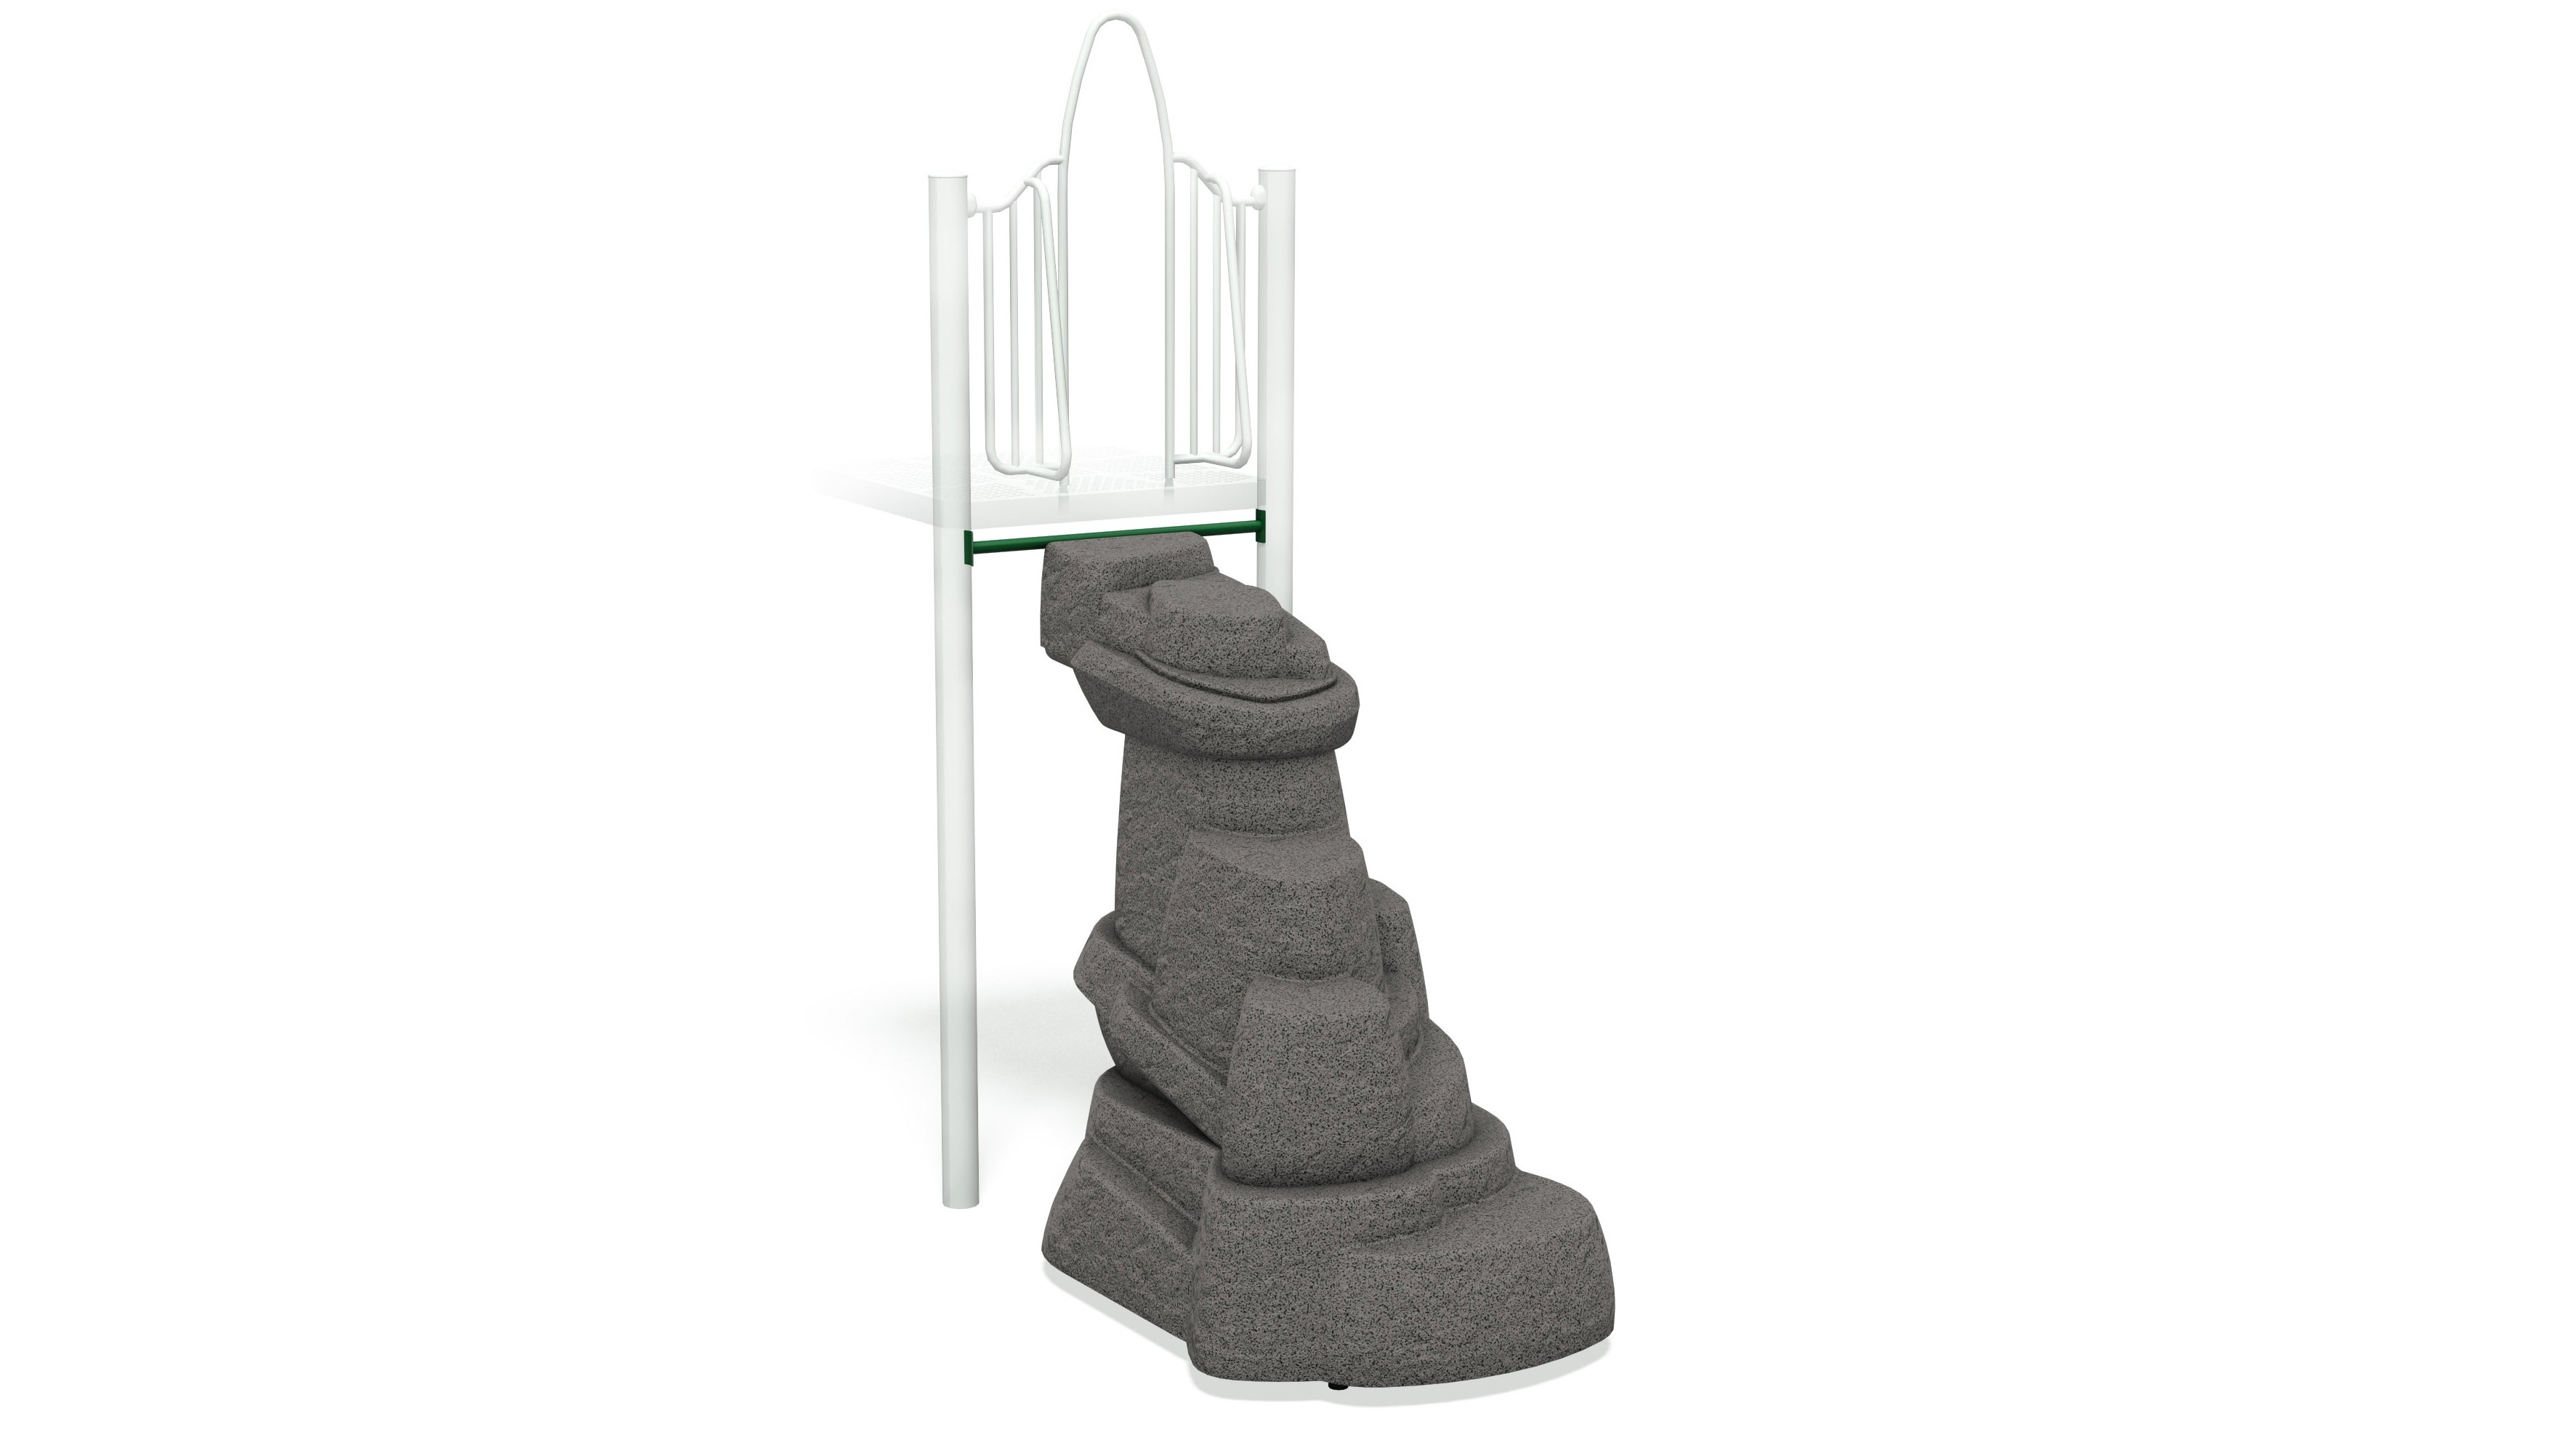 RockScape™ Climber - 8' Deck Height